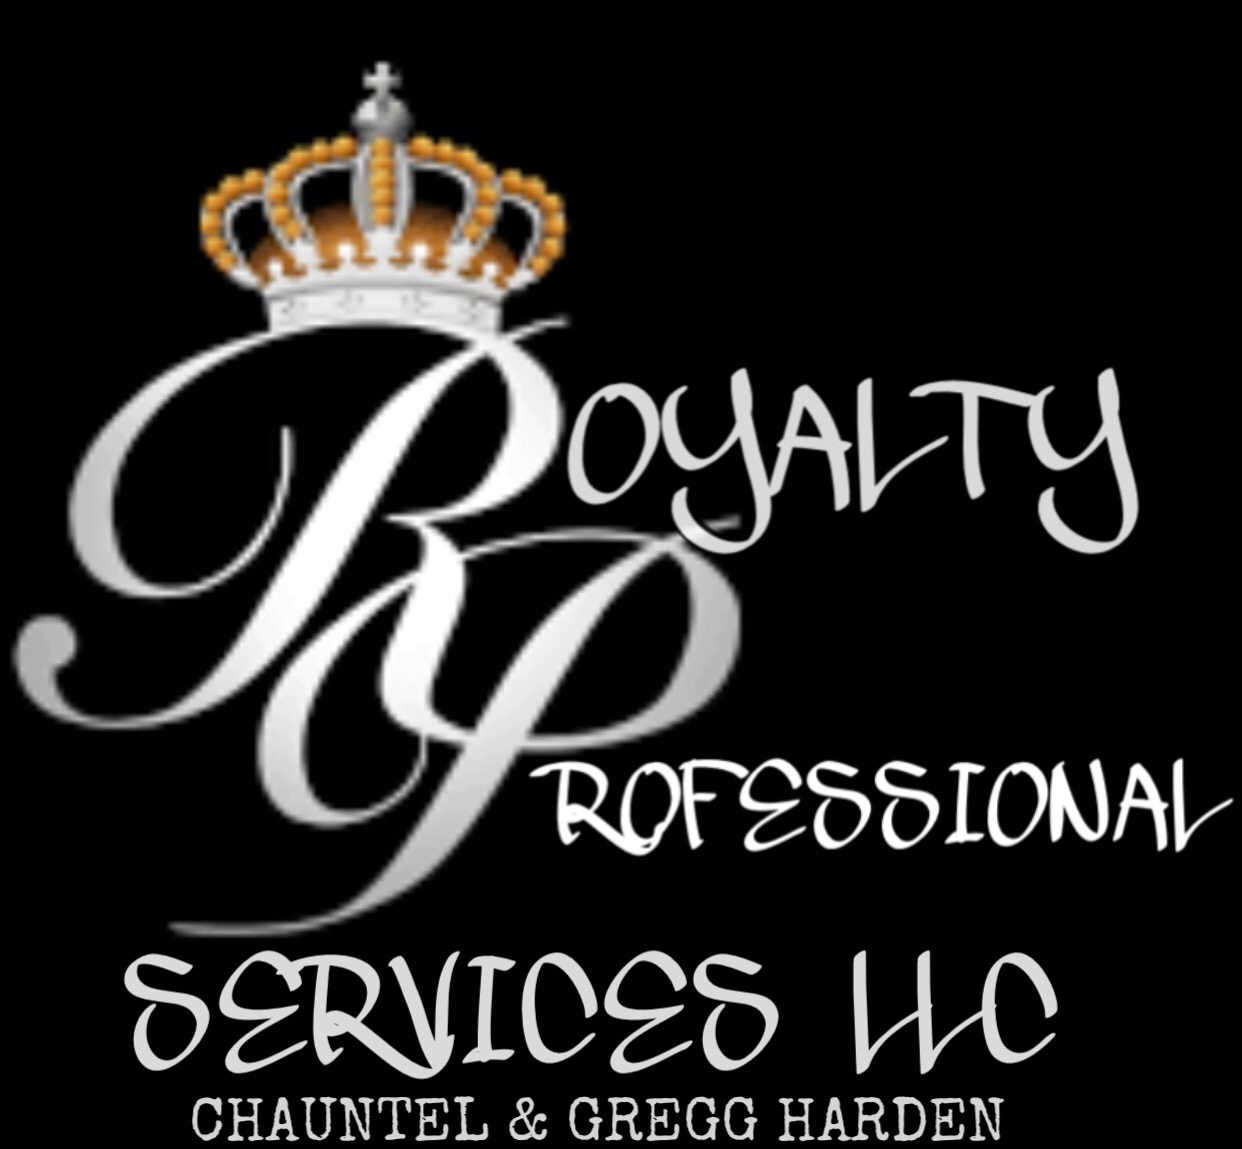 Royalty Pro Moving Services LLC Tallahassee Branch